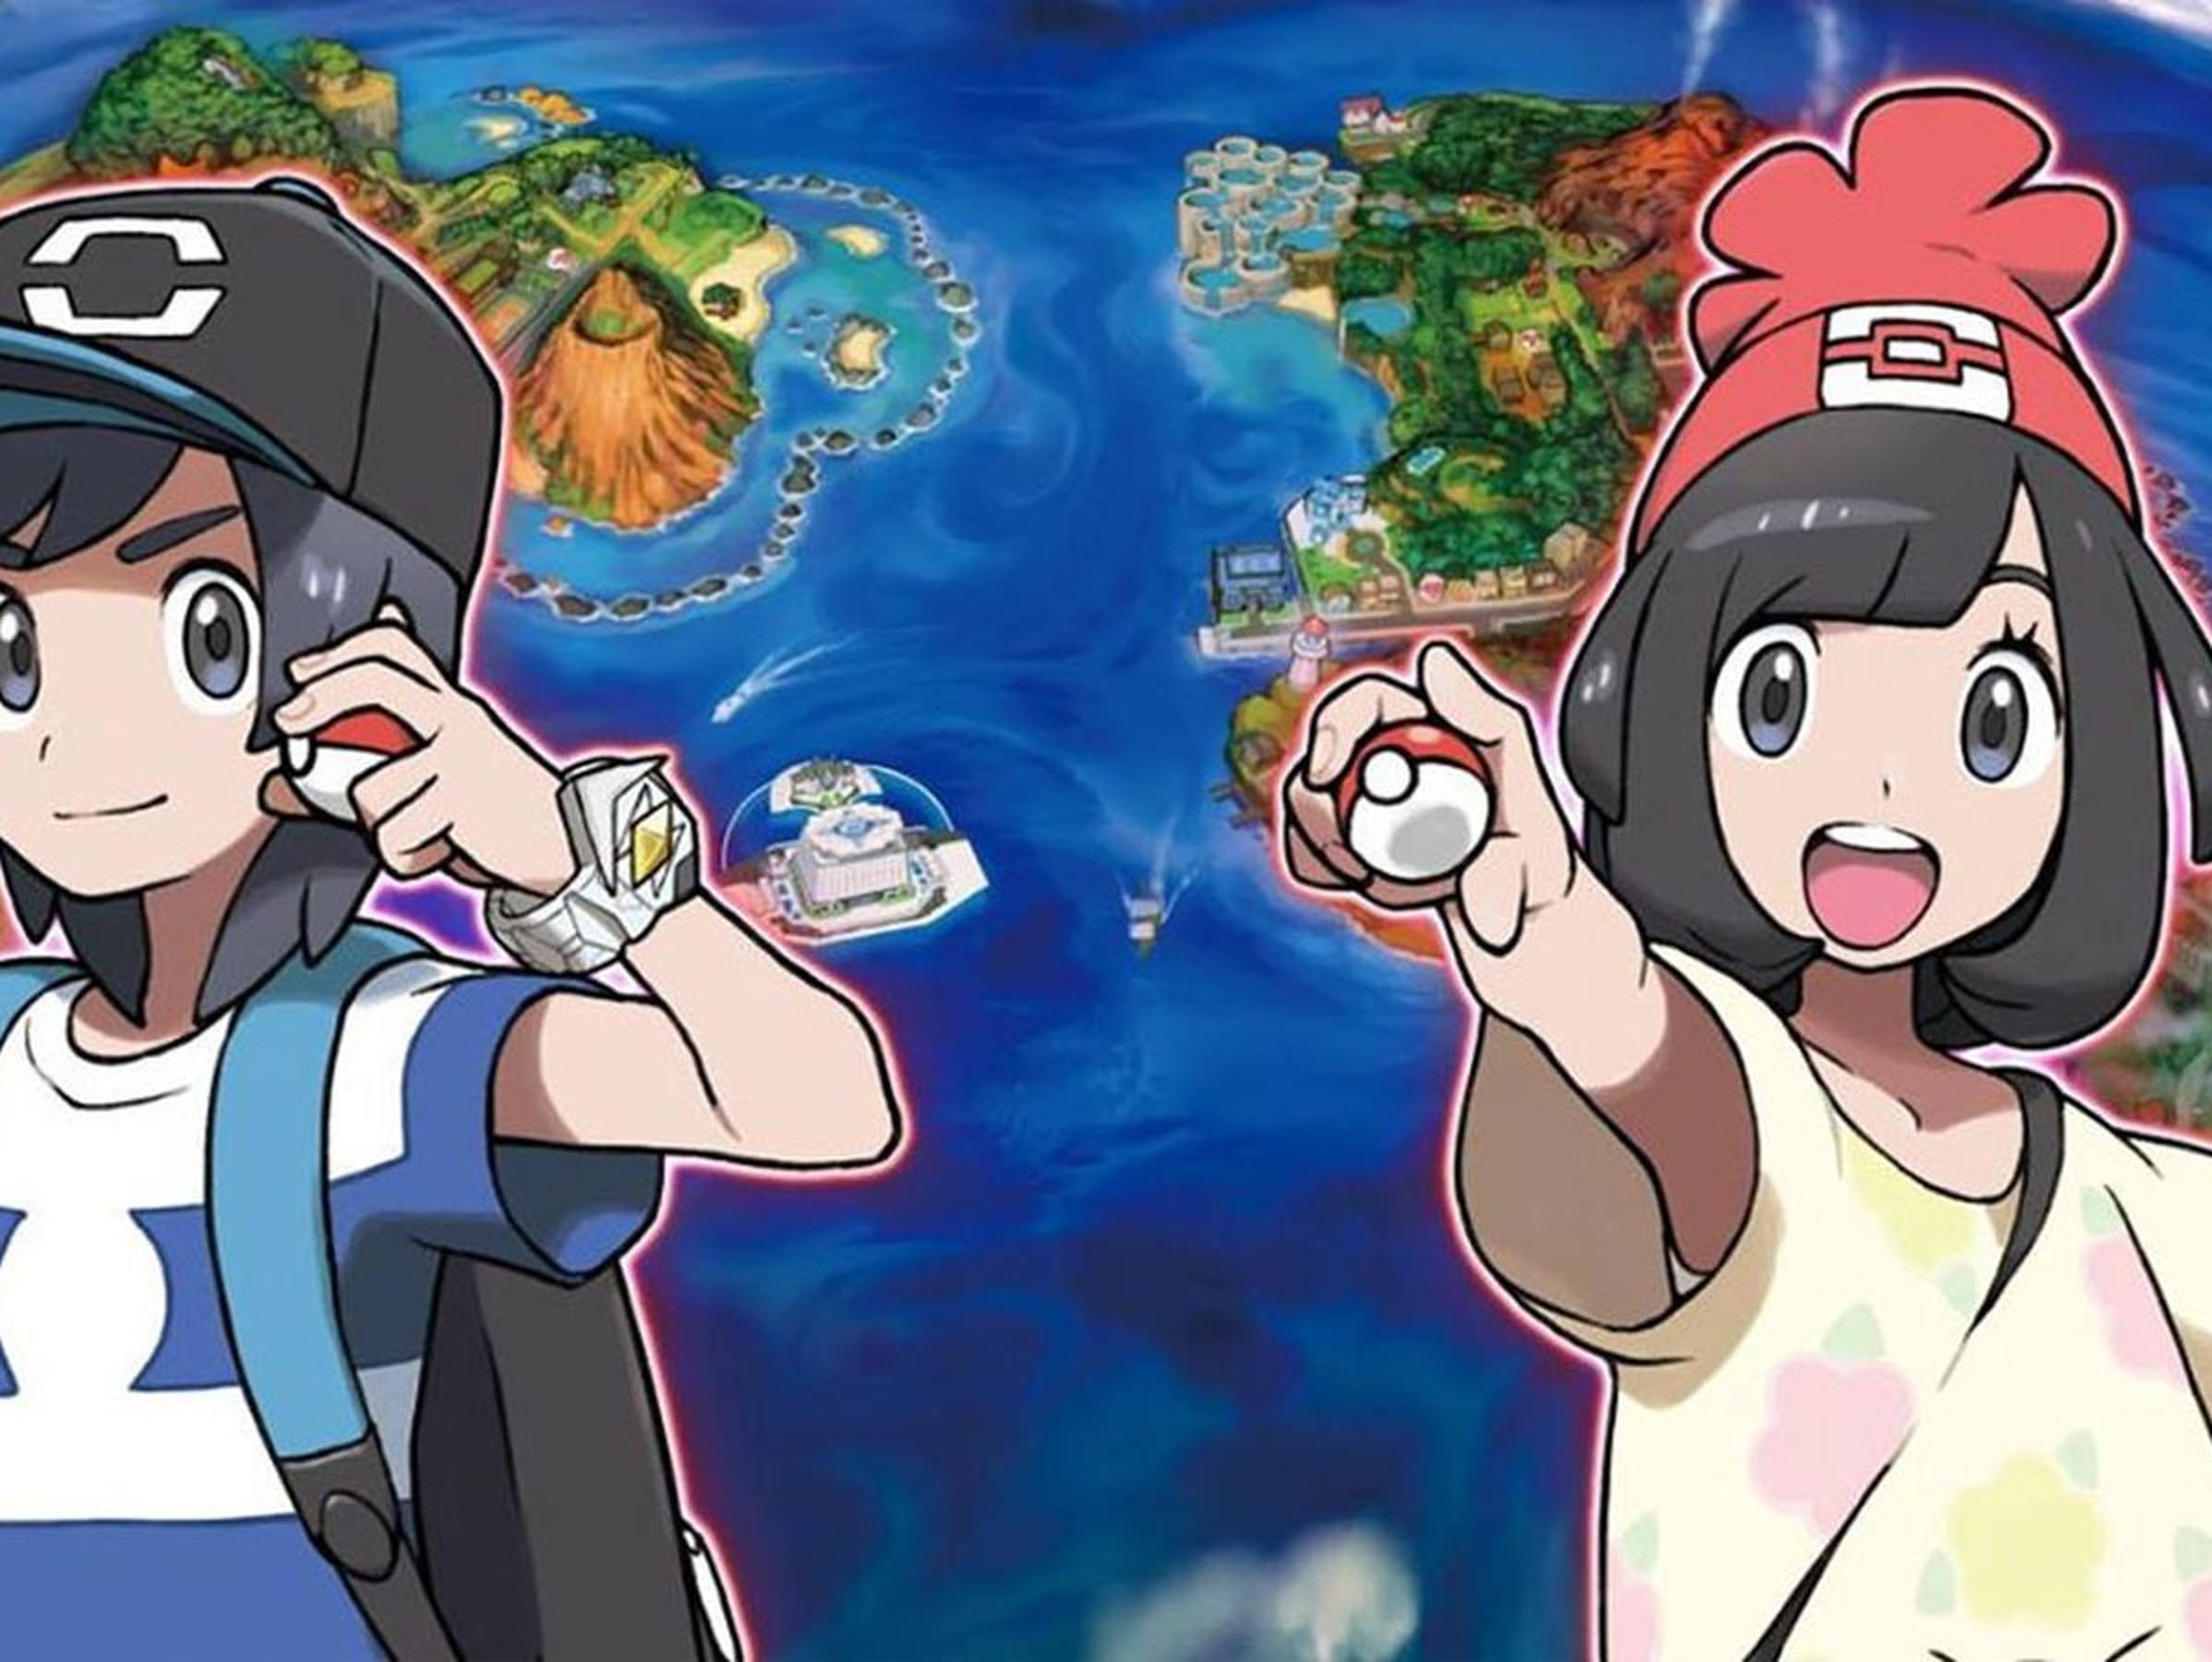 How to Beat the Elite Four in 'Pokémon Sun' and 'Moon' | Inverse